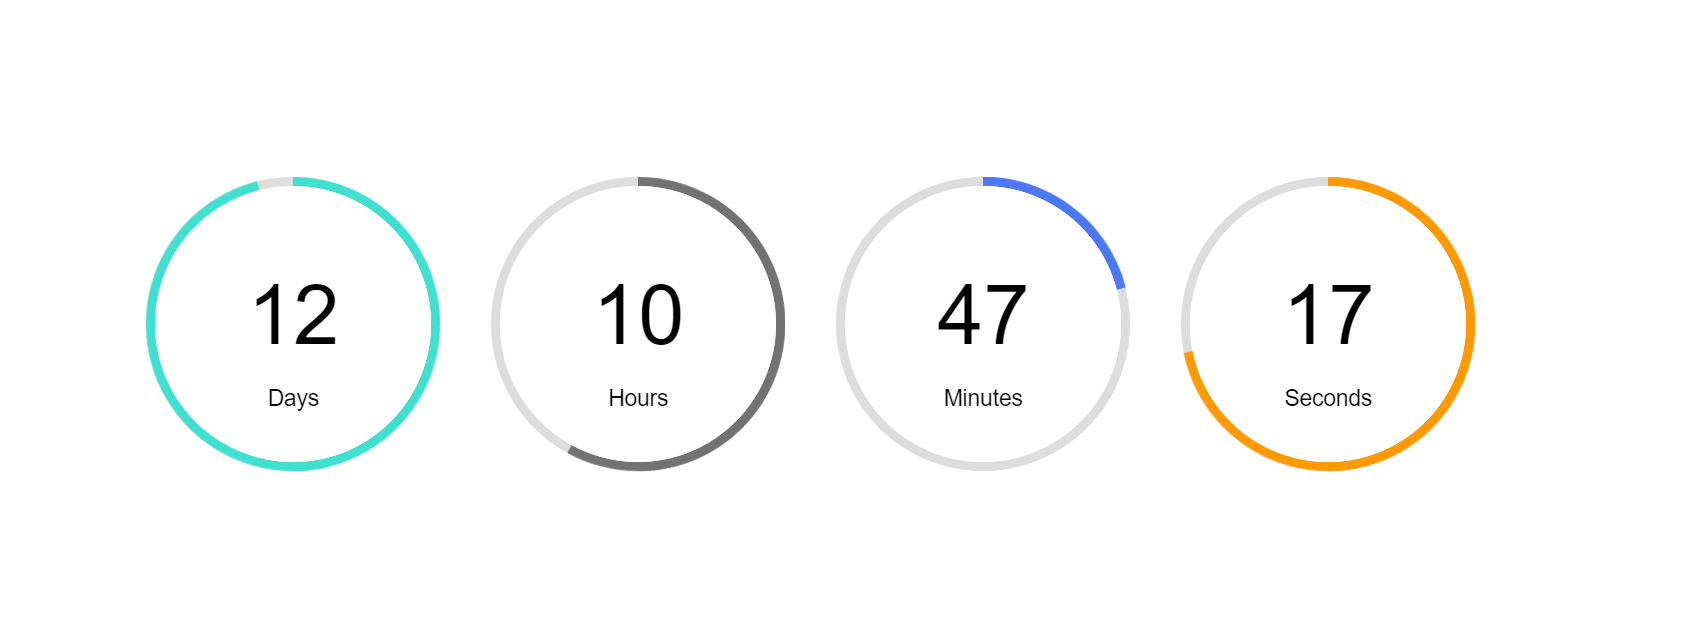 Countdown circular style with progress indicator